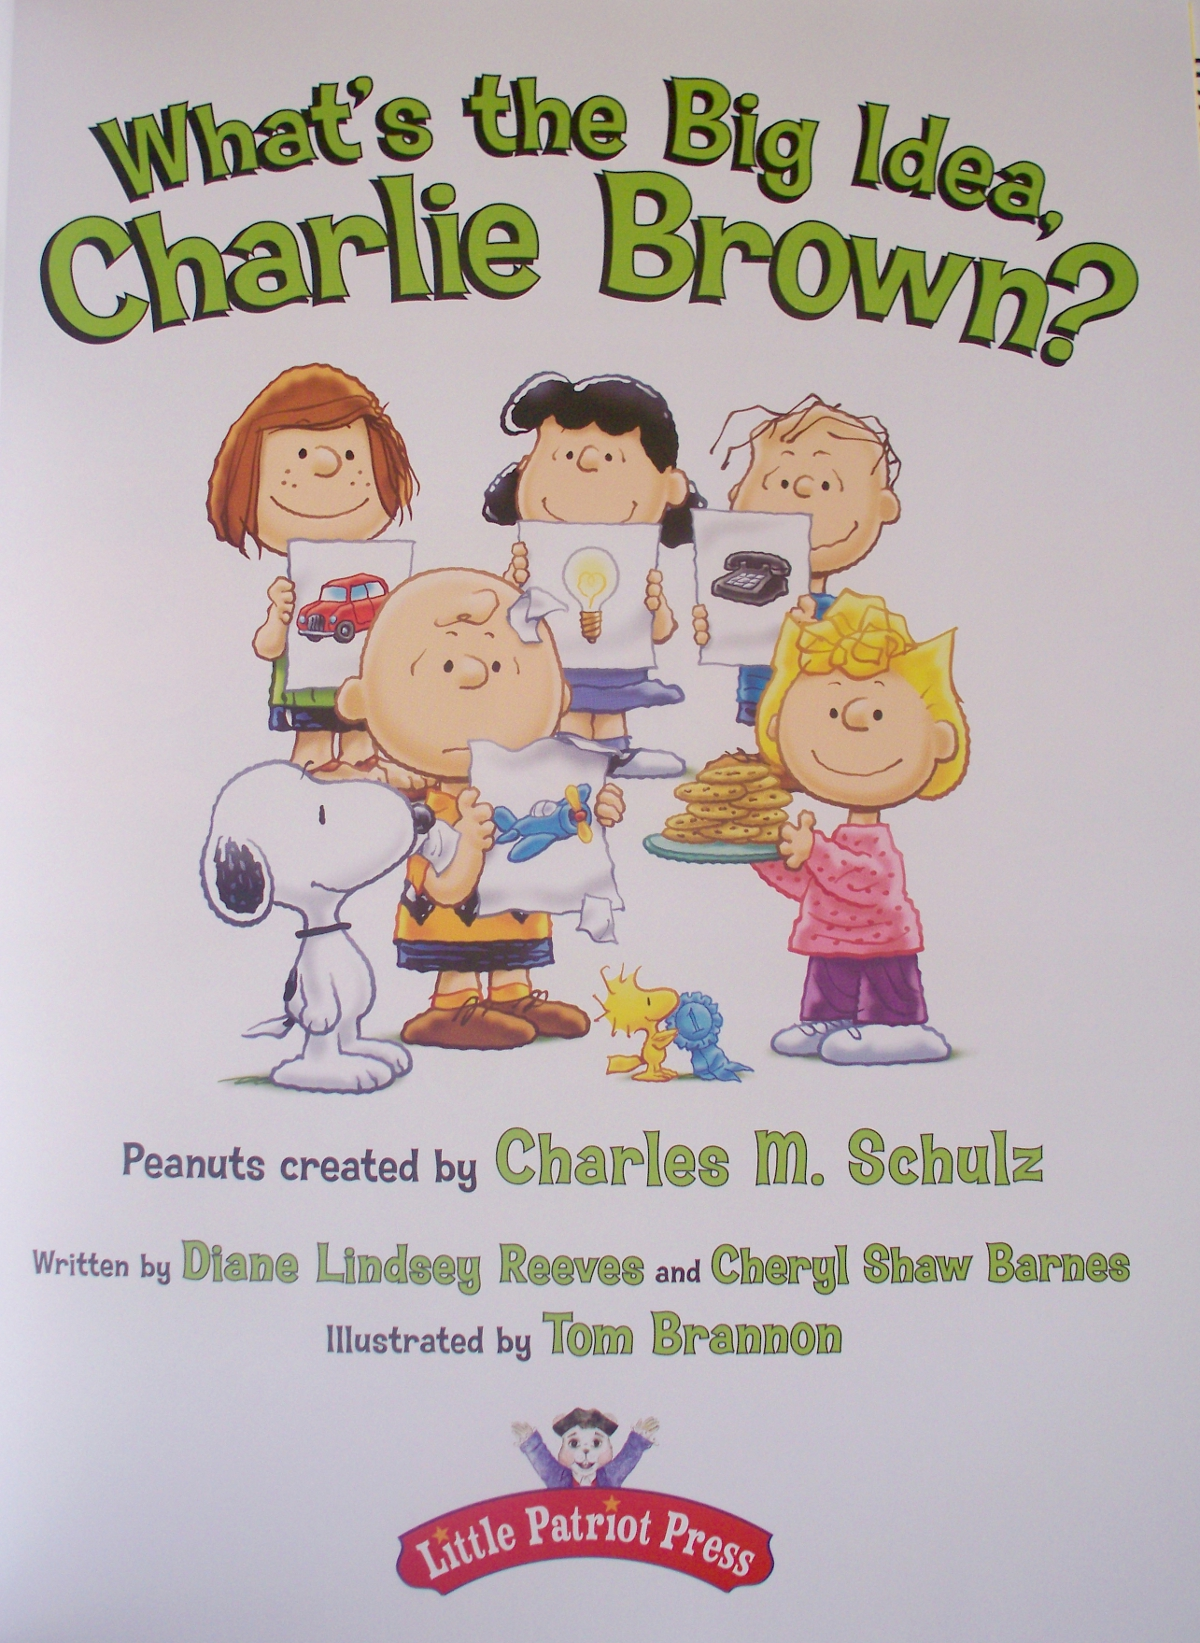 What's the big idea, Charlie Brown Joy Makin' Mamas Review